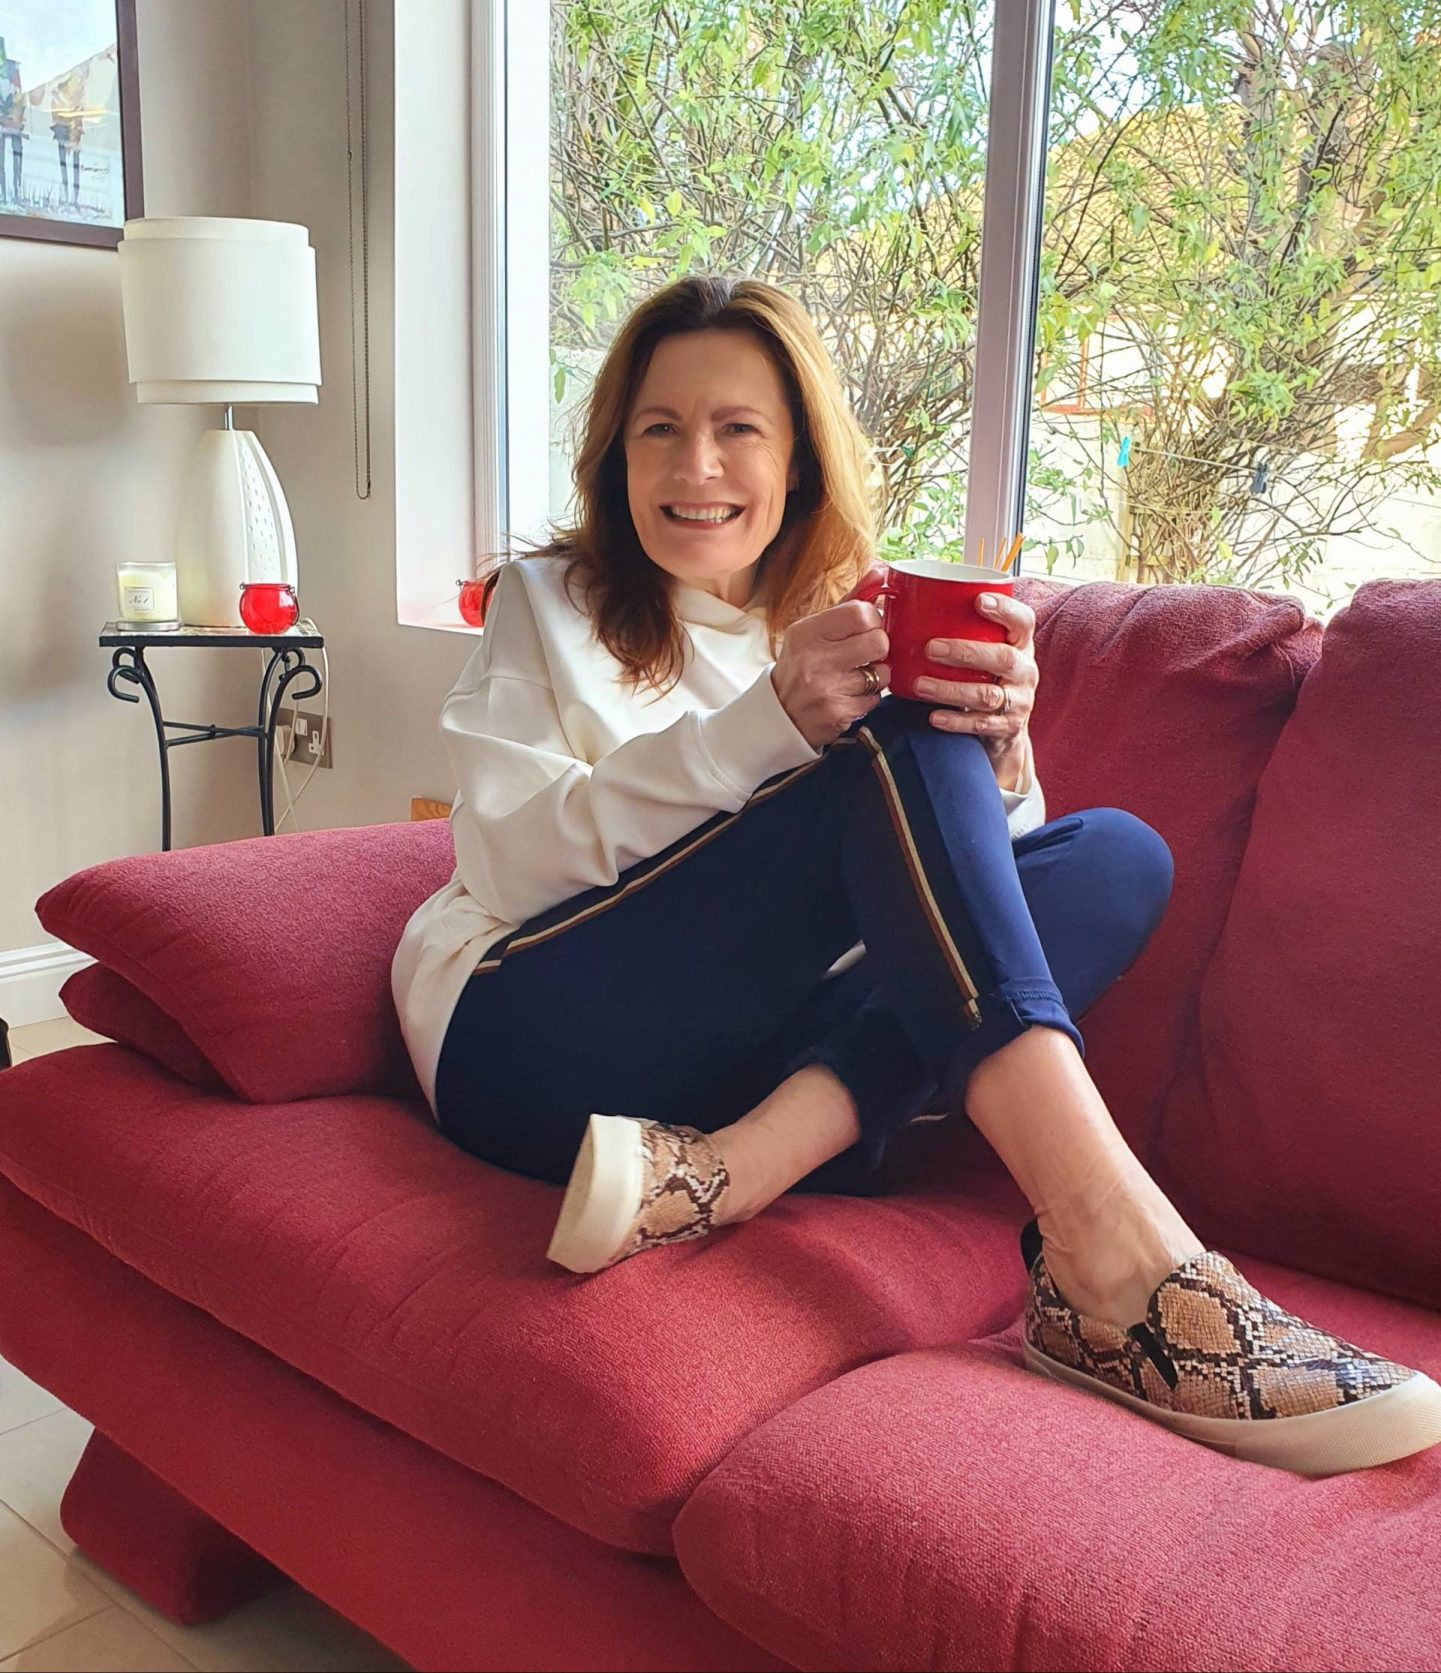 Lounging at Home - January's Style Not Age, Hilda Smith